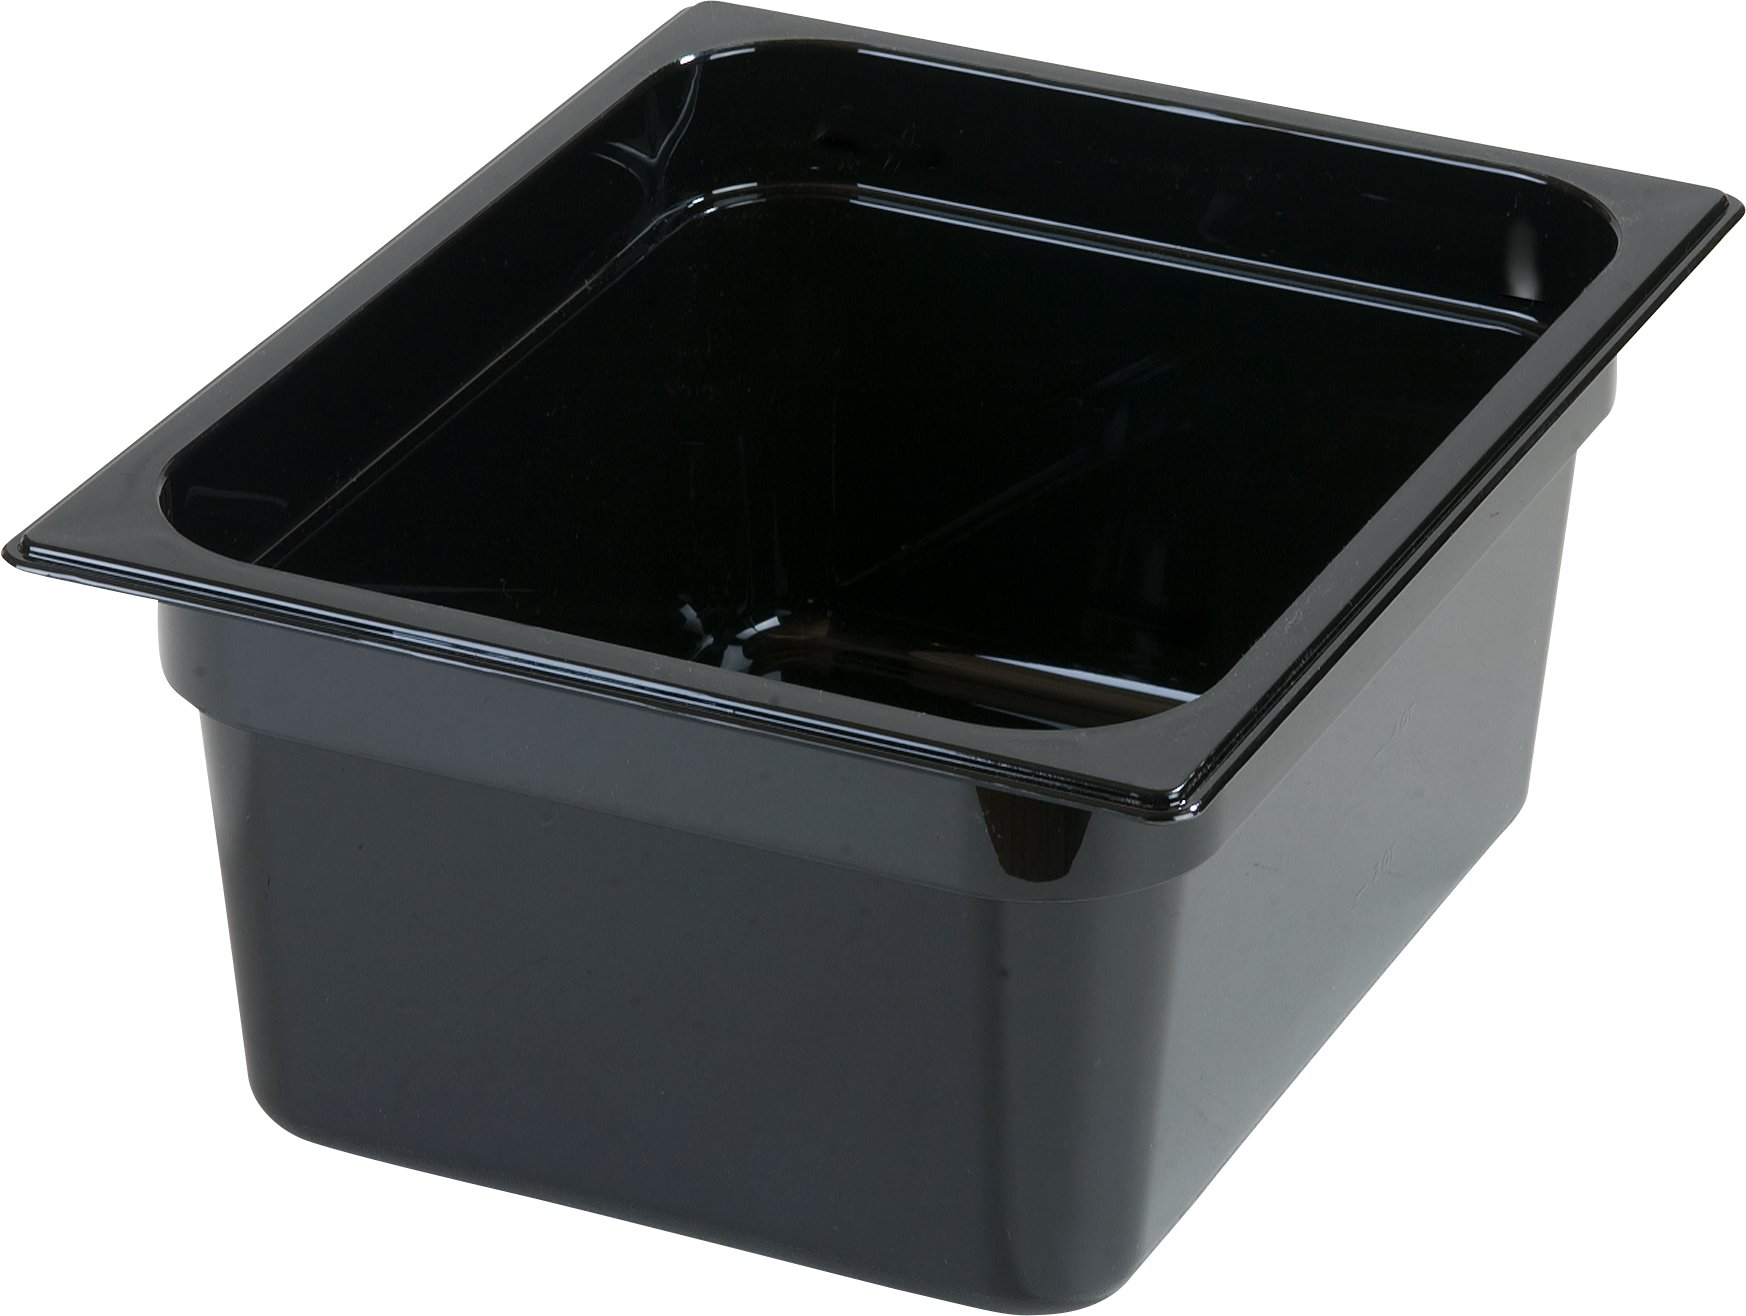 Carlisle 10422B03 StorPlus Gastronorm High-Heat Half-Size Food Pan, 8.7 qt. Capacity, 12-3/4 x 10-3/8 x 6'', Black (Case of 6)